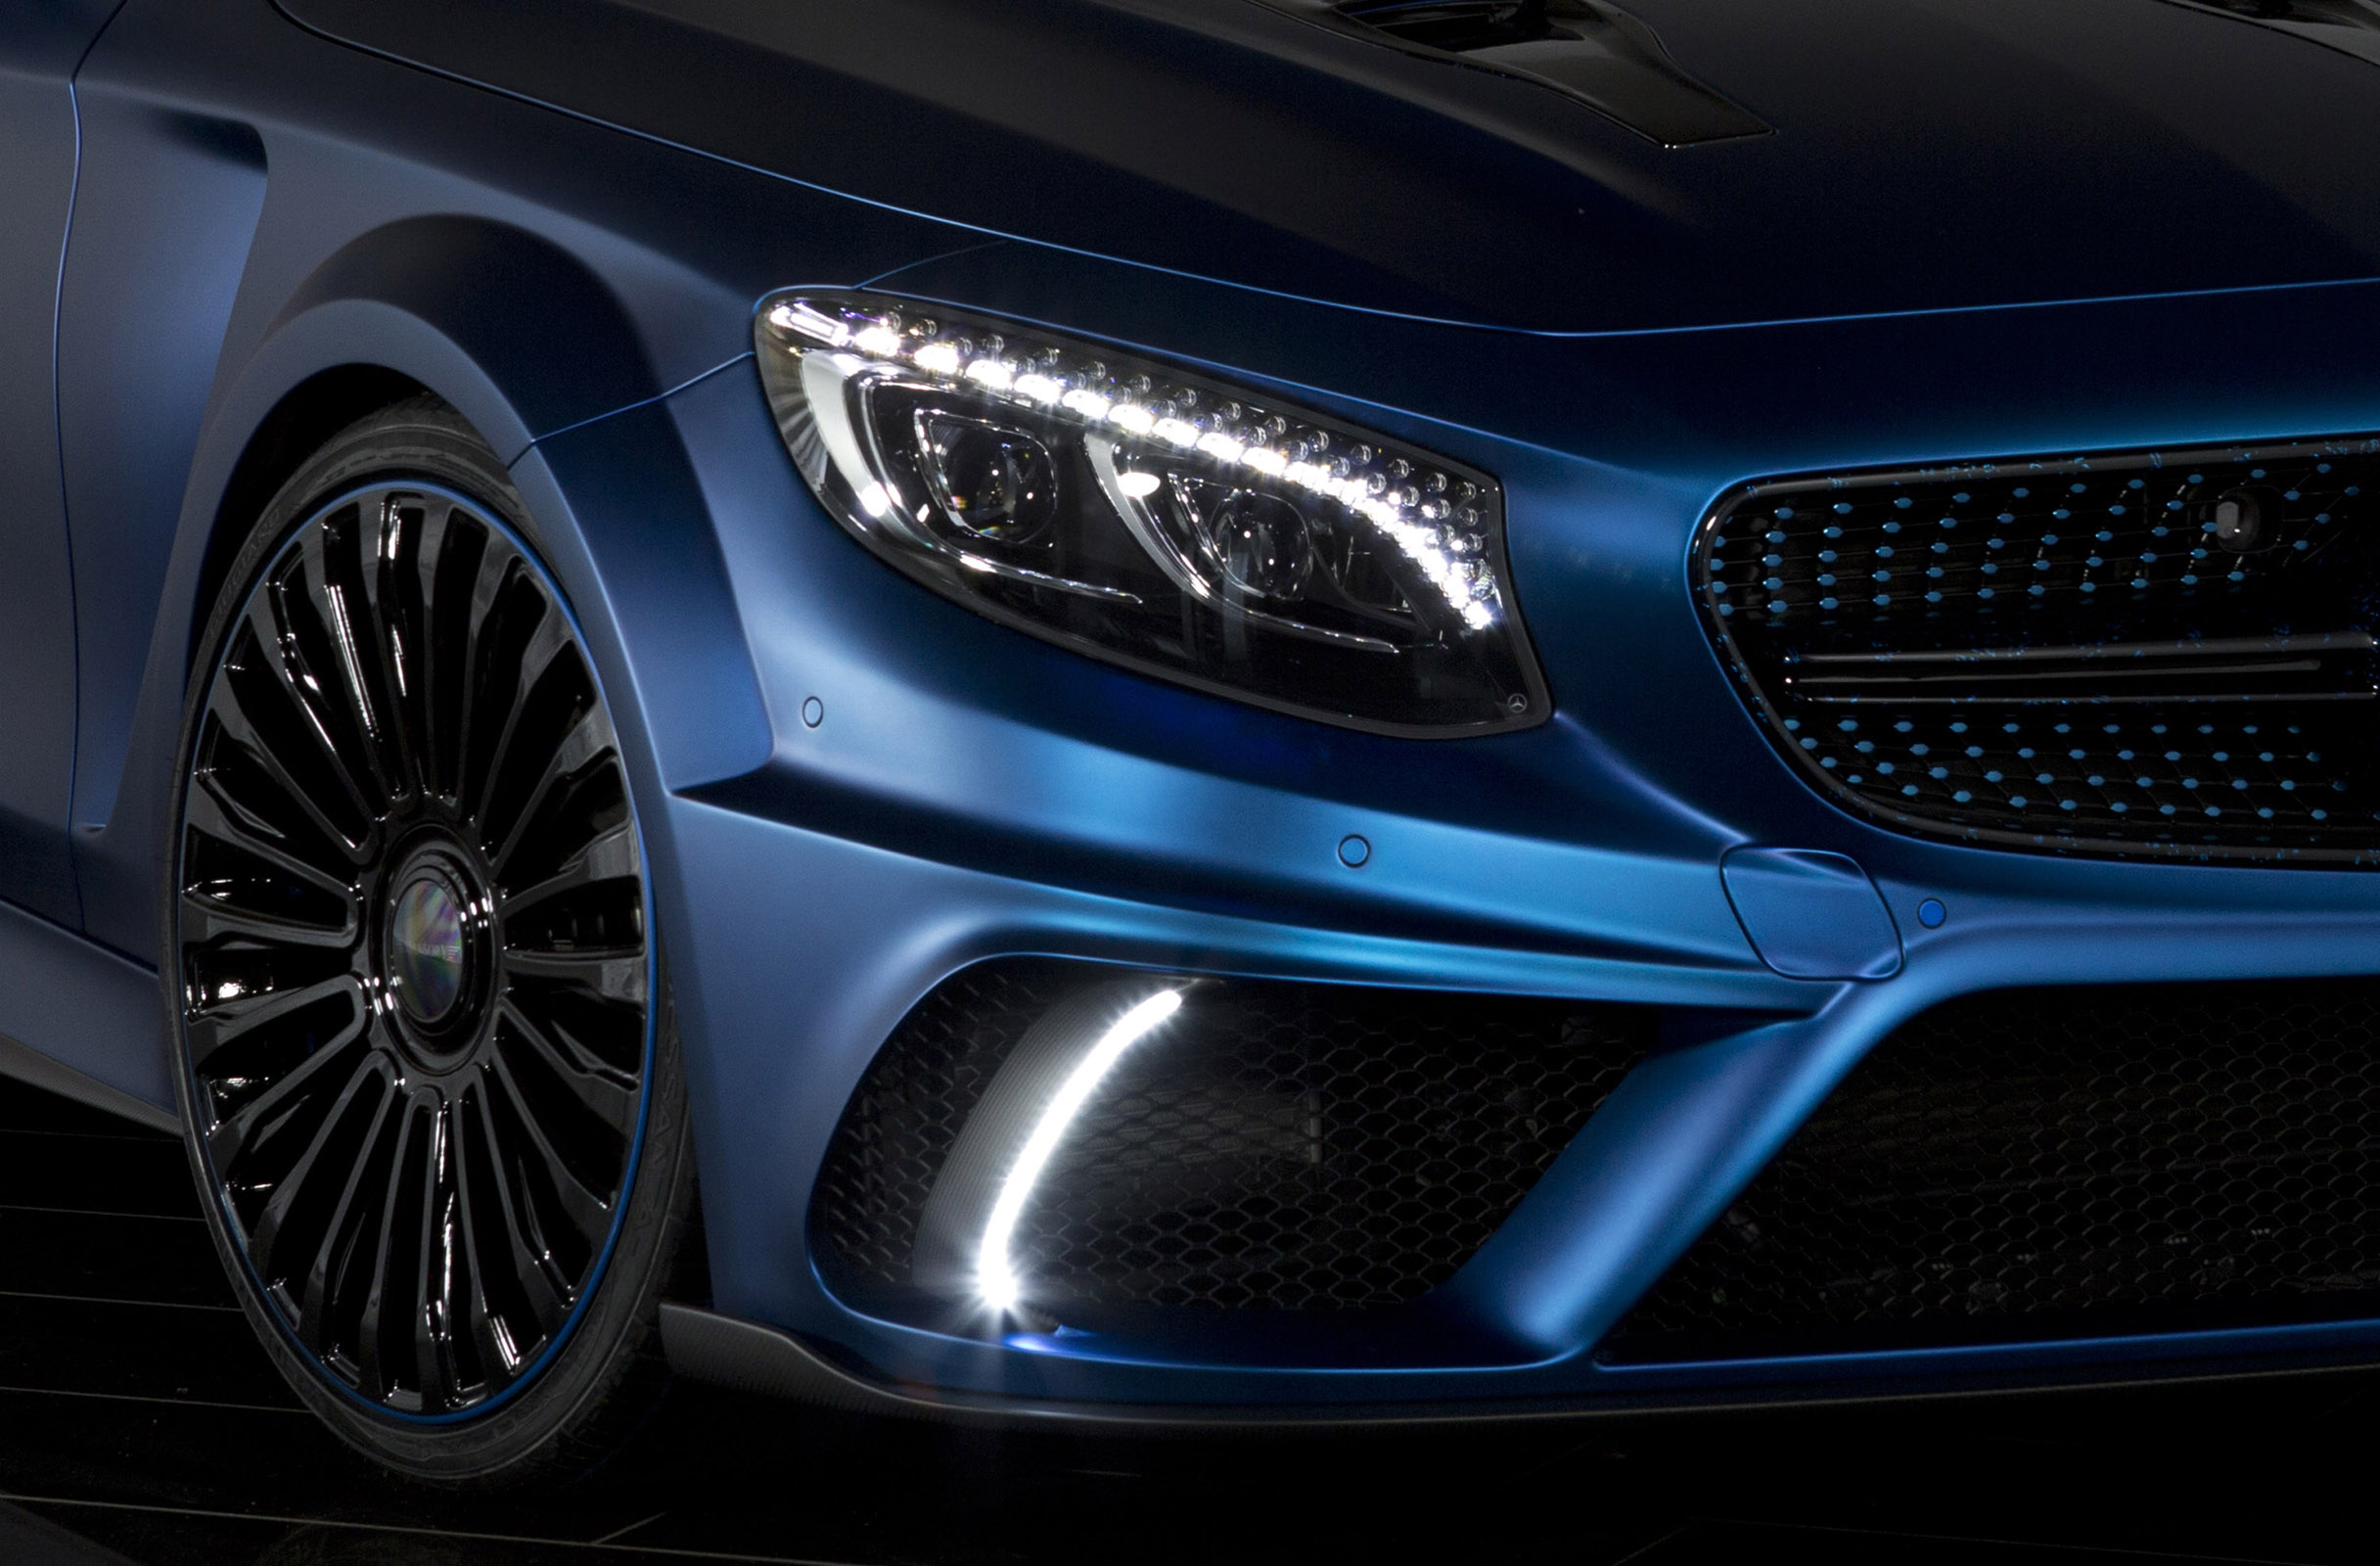 2015 Mansory Mercedes-Benz S63 AMG Diamond Edition